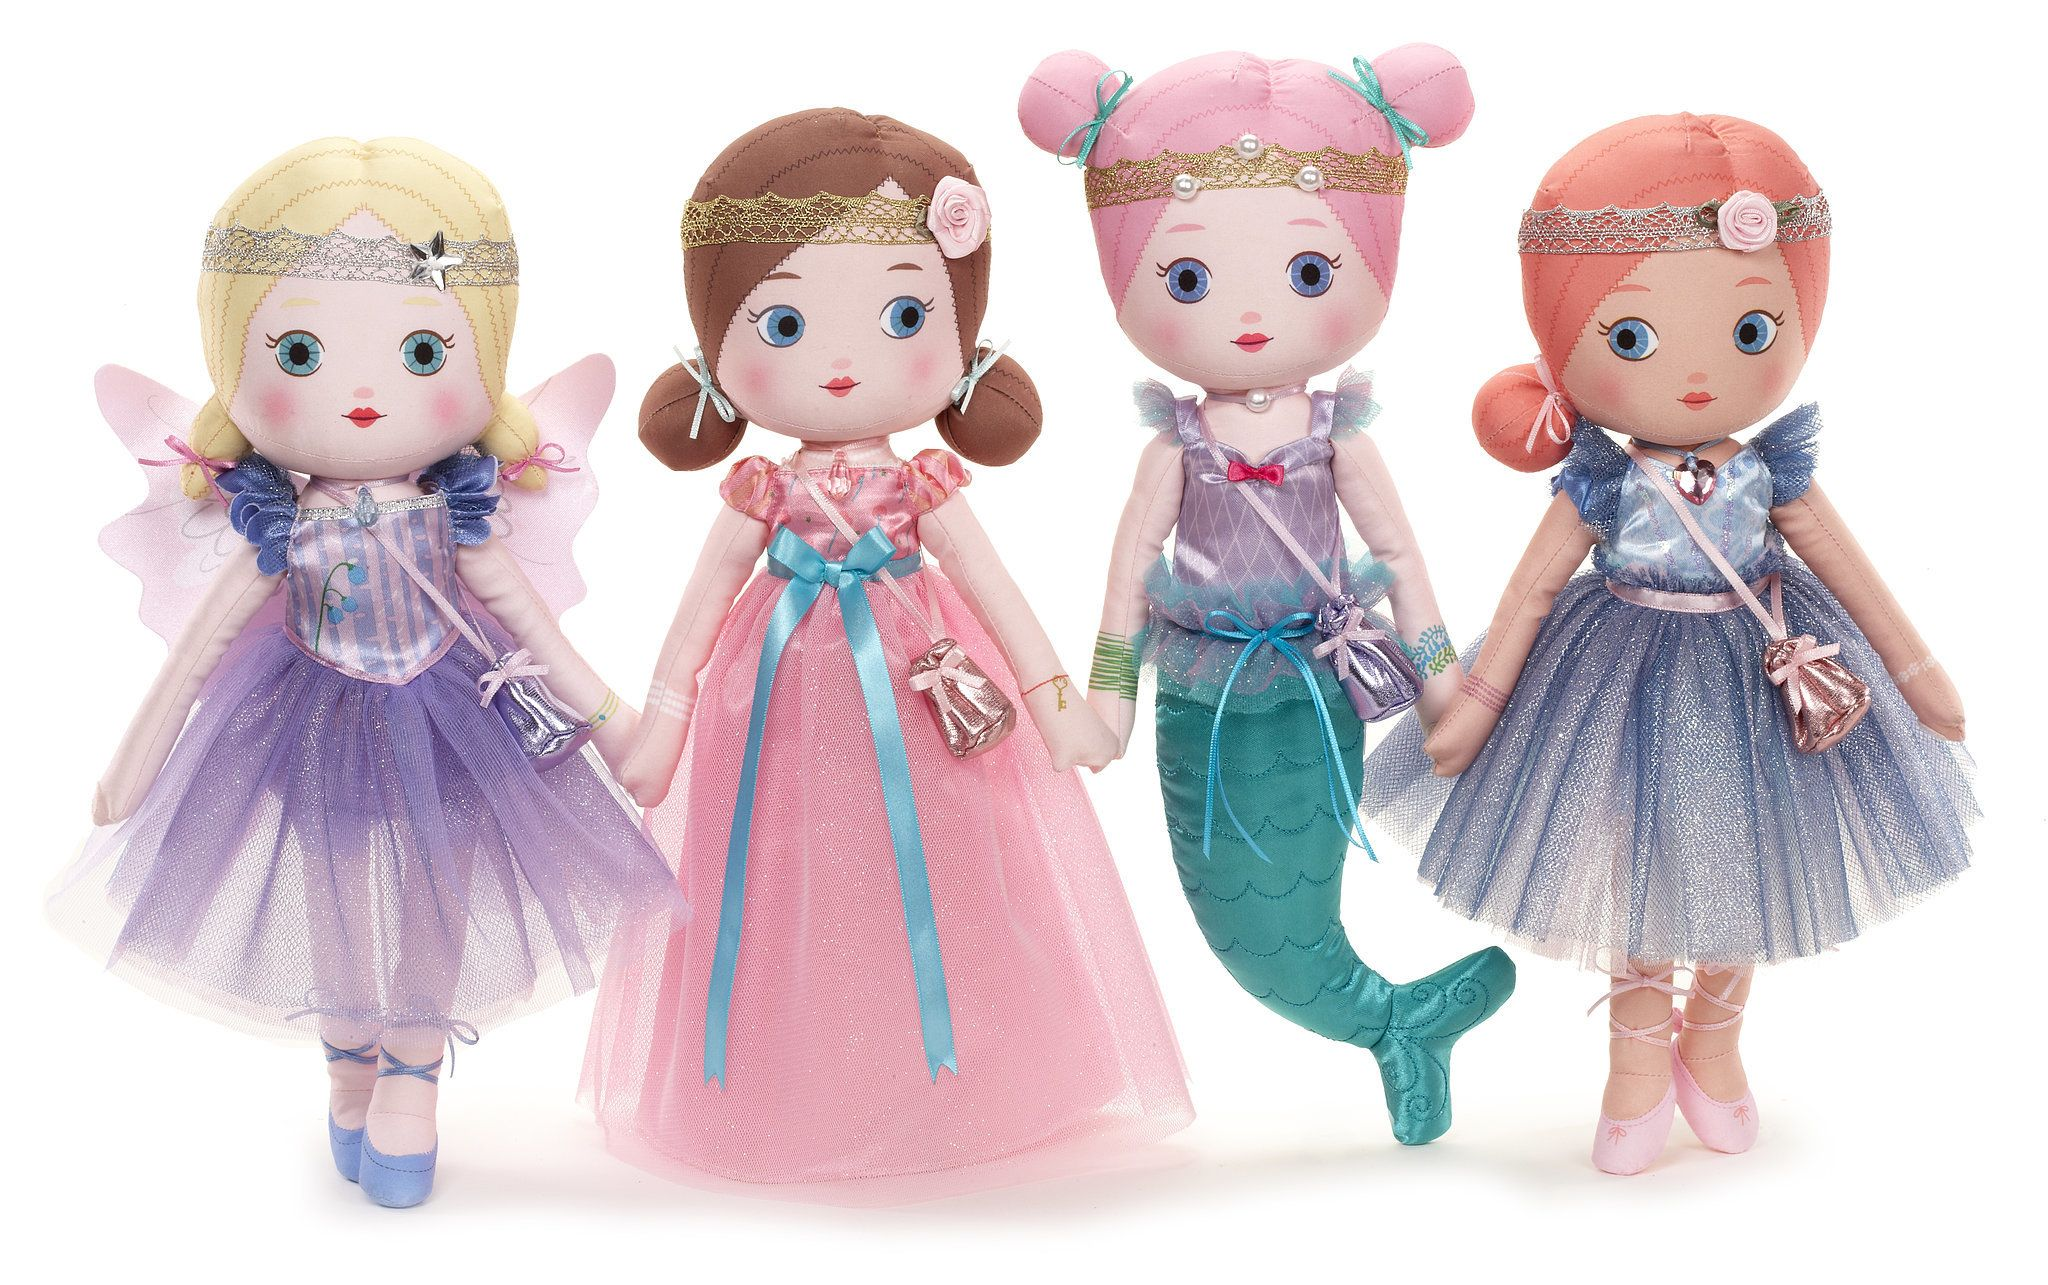 The 20 New Toys You'll Want to Add to Your Kids' Wish Lists: Mooshka Fairytale Dolls